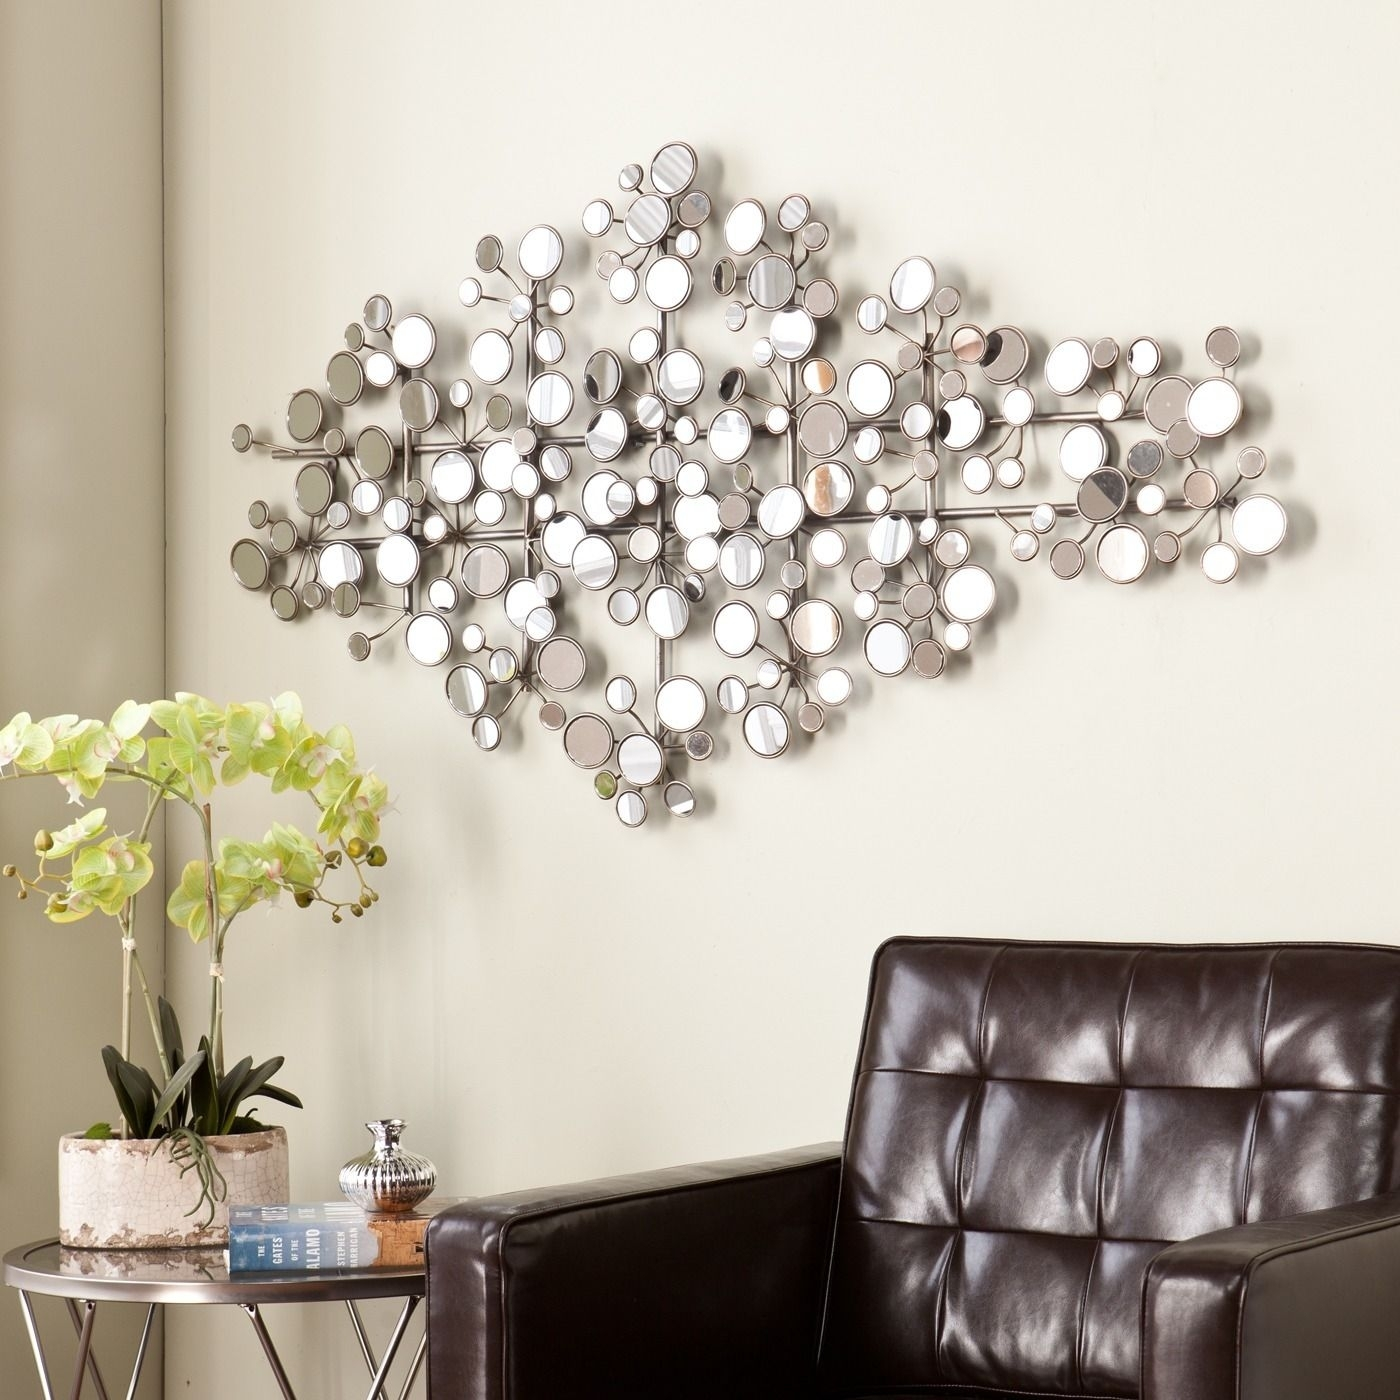 Wall Decor : Long Mirror Tall Wall Mirrors Large Decorative With Regard To Most Current Mirror Sets Wall Accents (View 13 of 15)